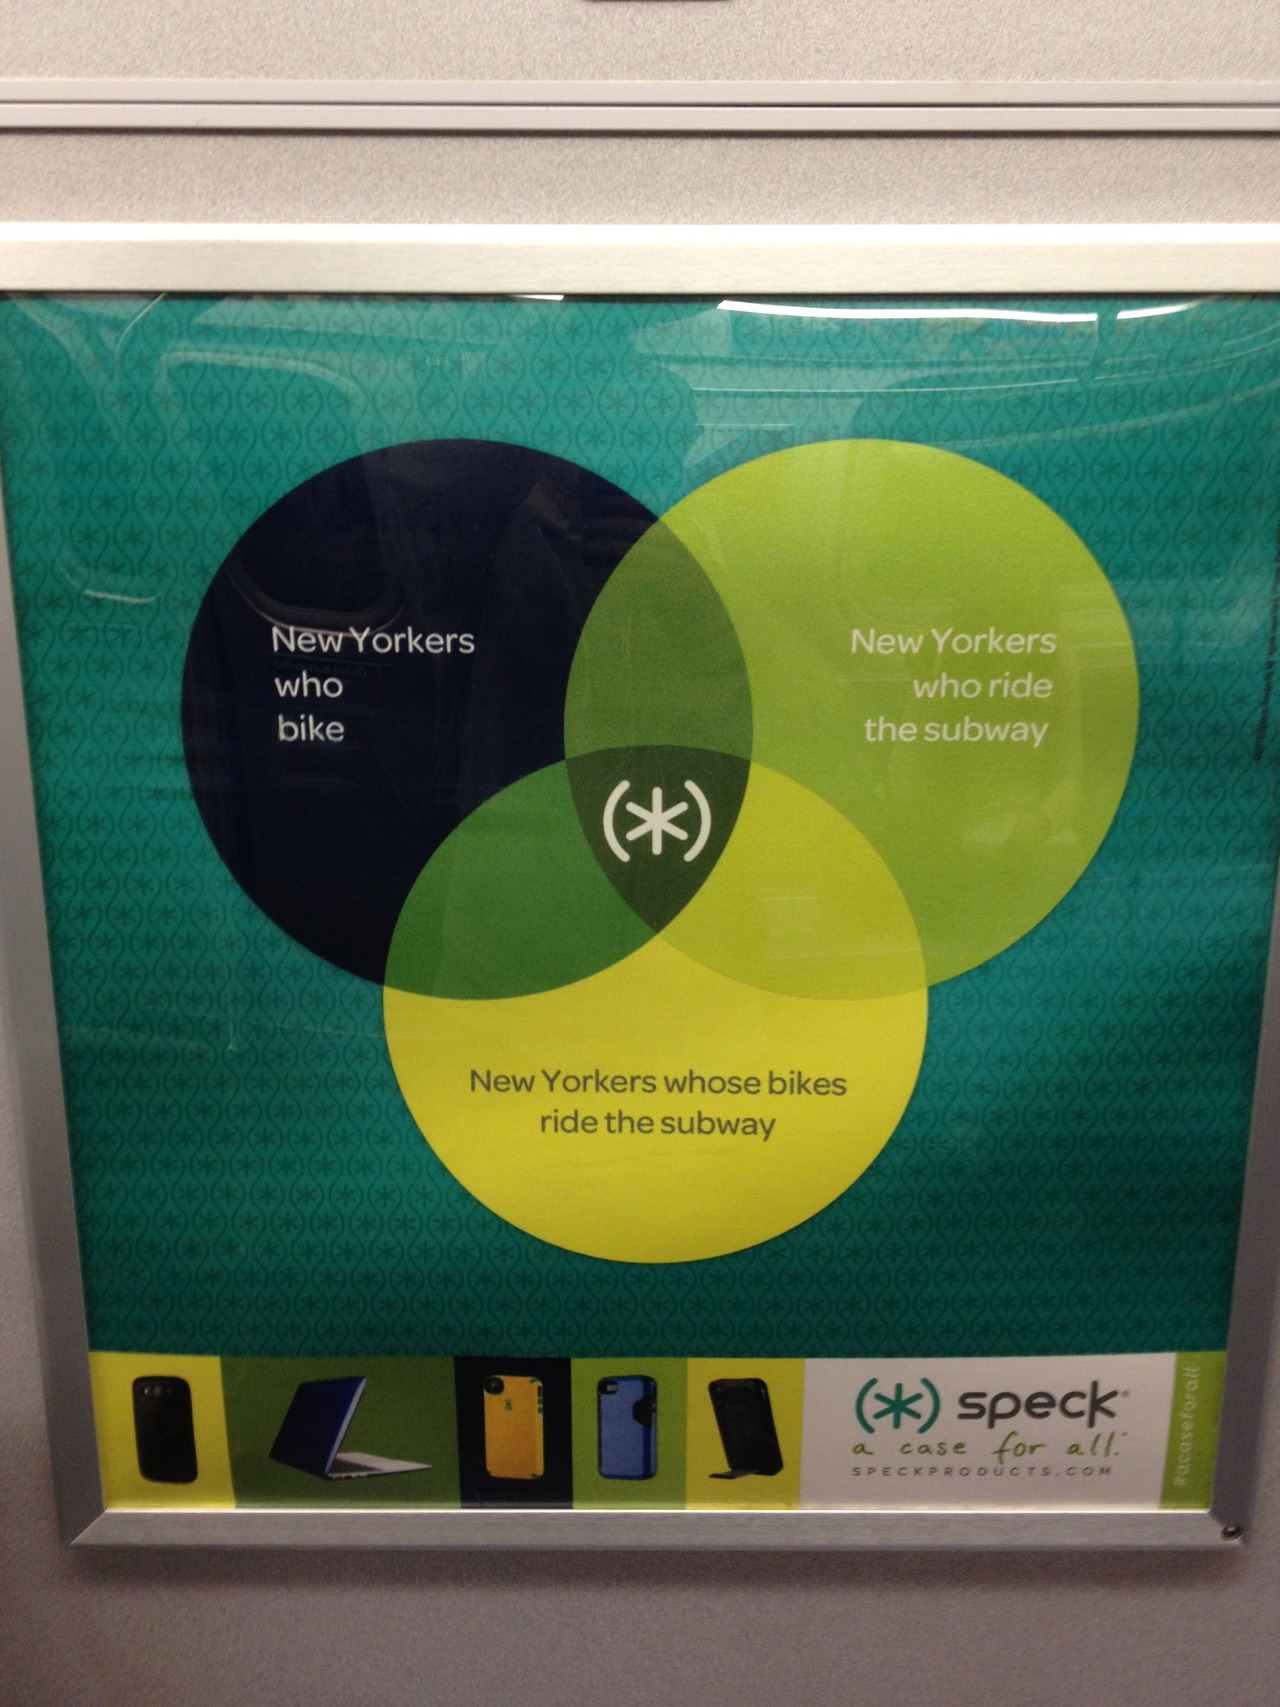 Venn Diagram Fail on the NY Subway